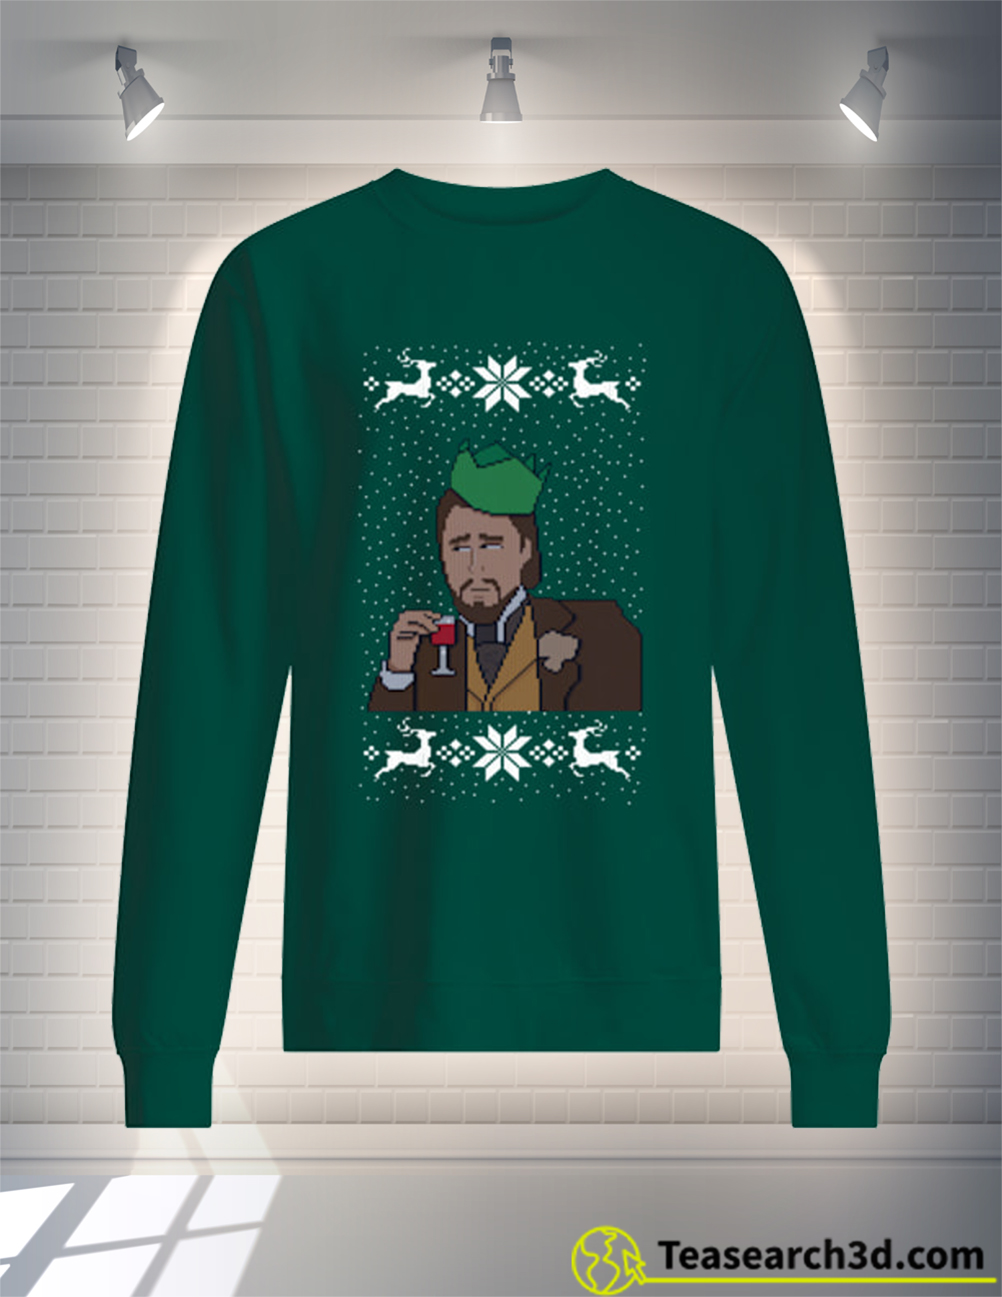 Leonardo DiCaprio christmas sweater and jumper green